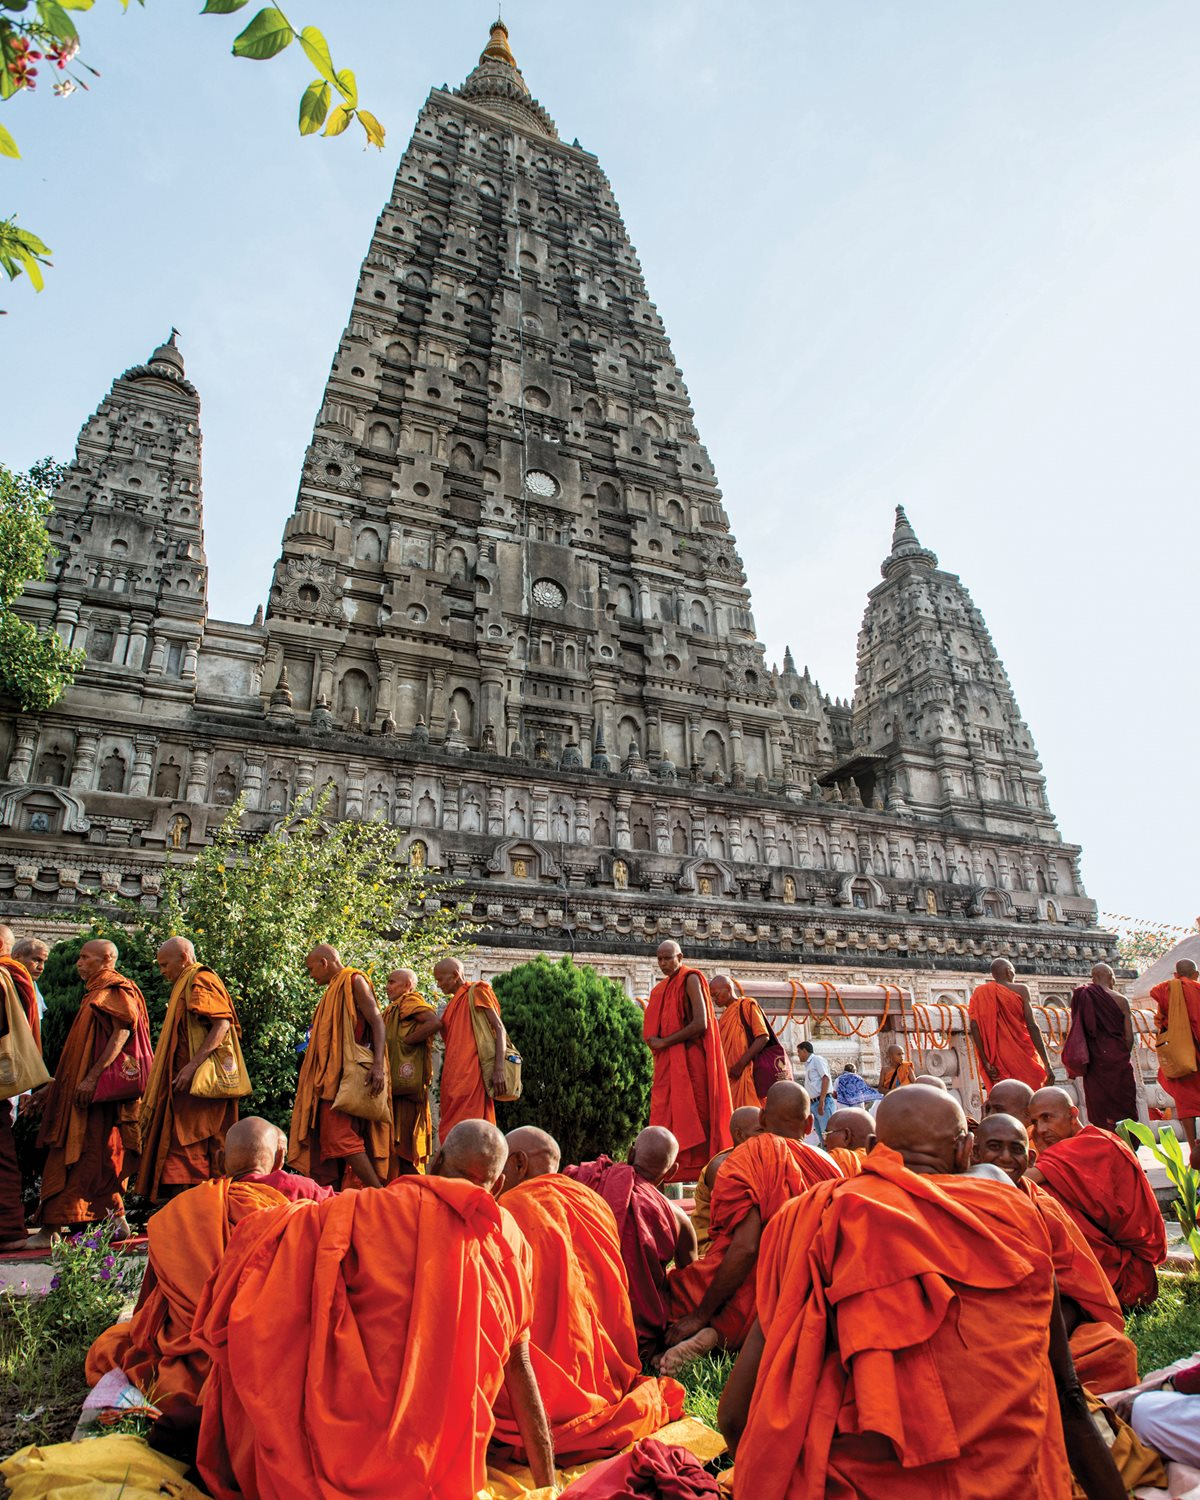 Buddhist monks amass beside Bodh Gaya's Mahabodhi Temple, a UNESCO World Heritage site.